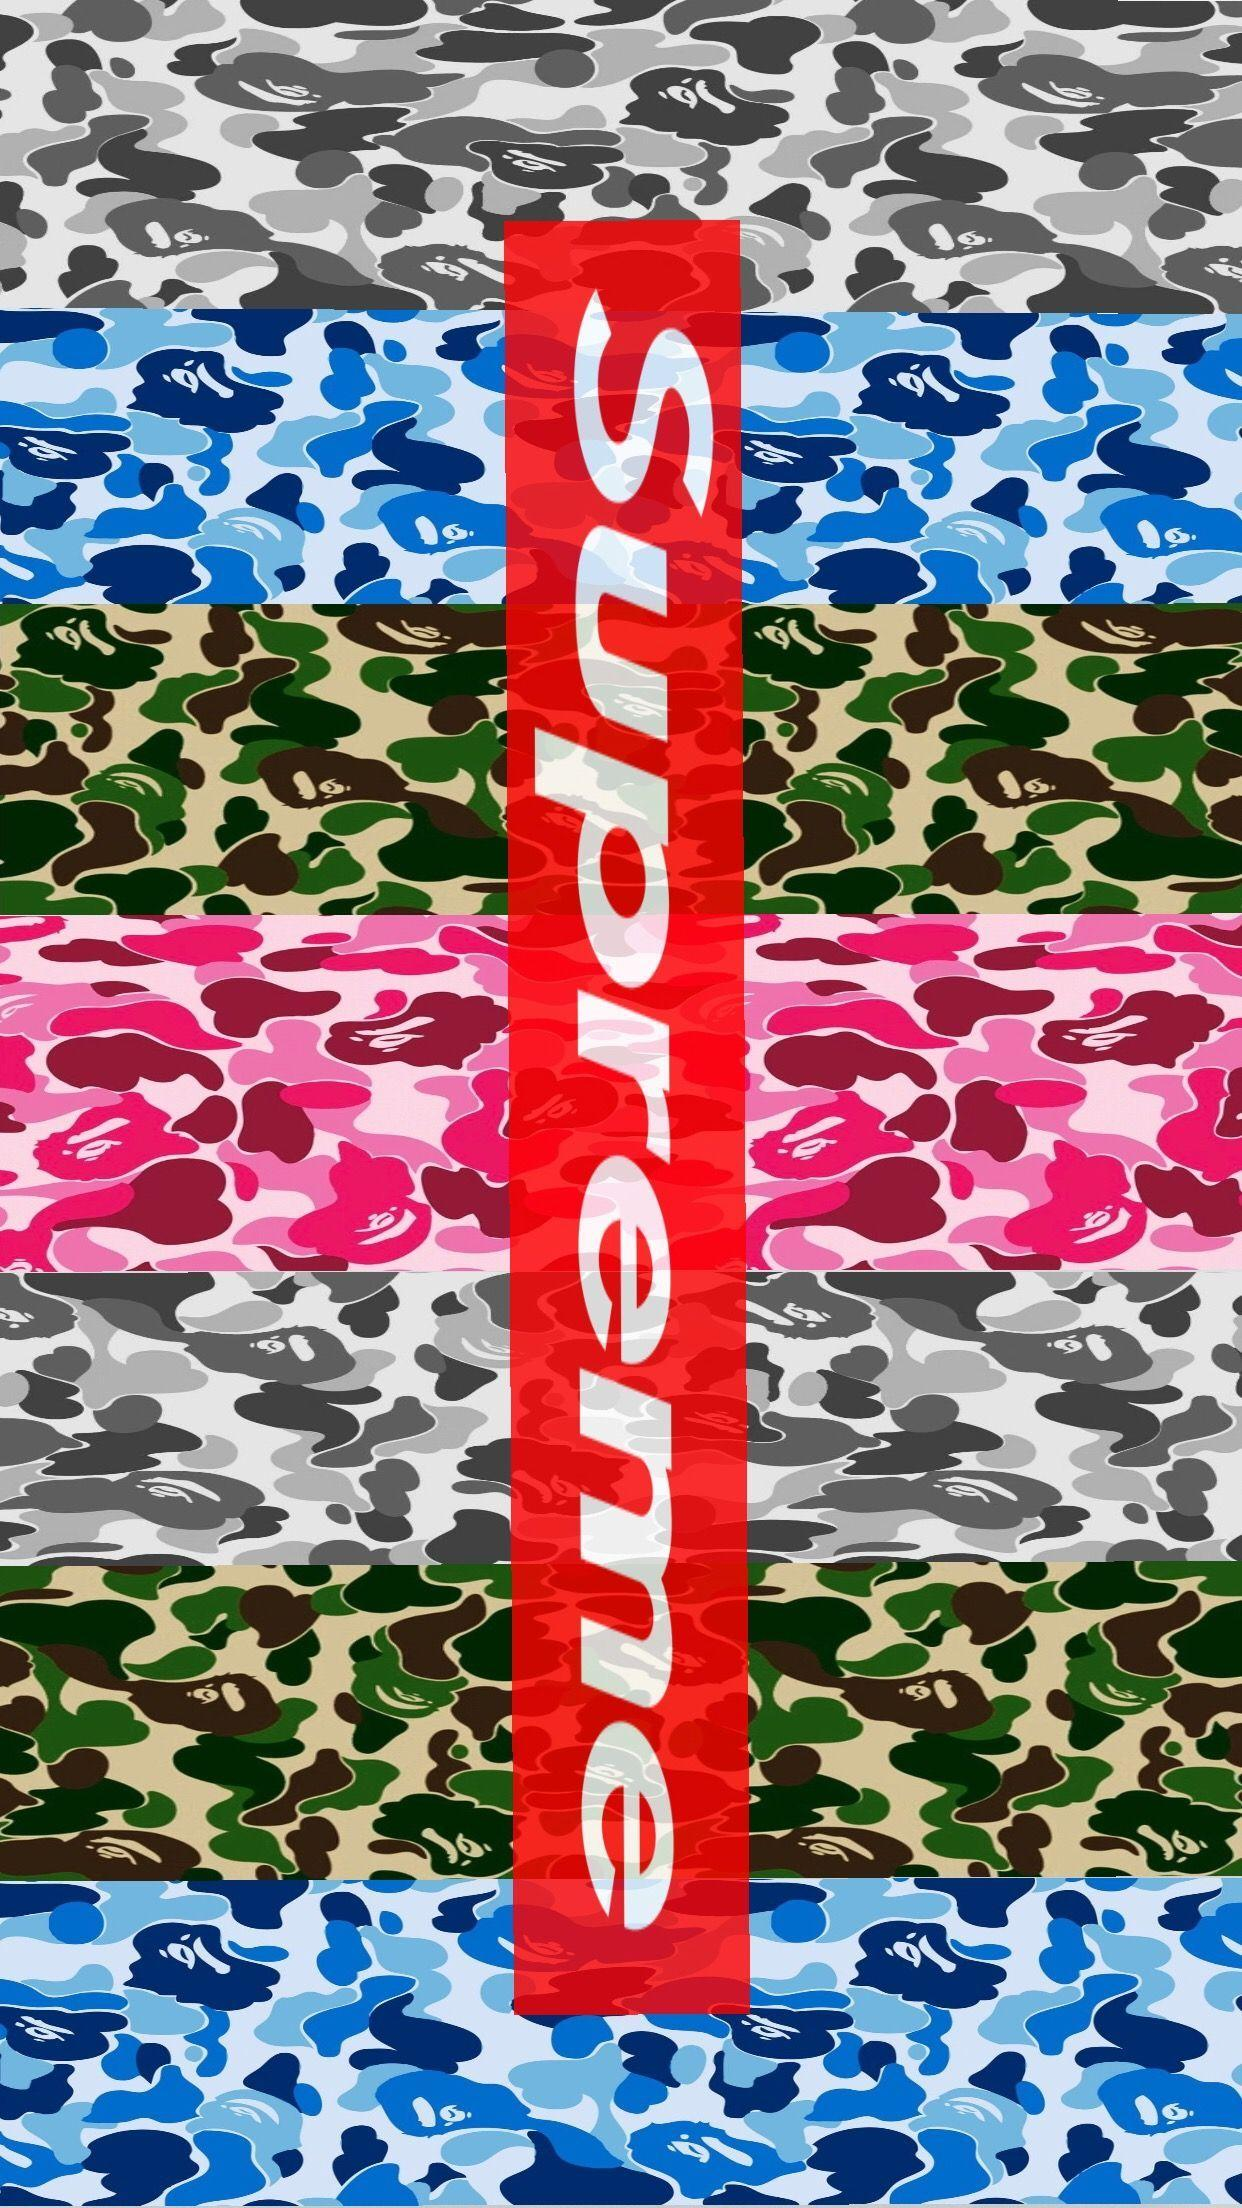 Supreme And Bape Wallpapers - Wallpaper Cave